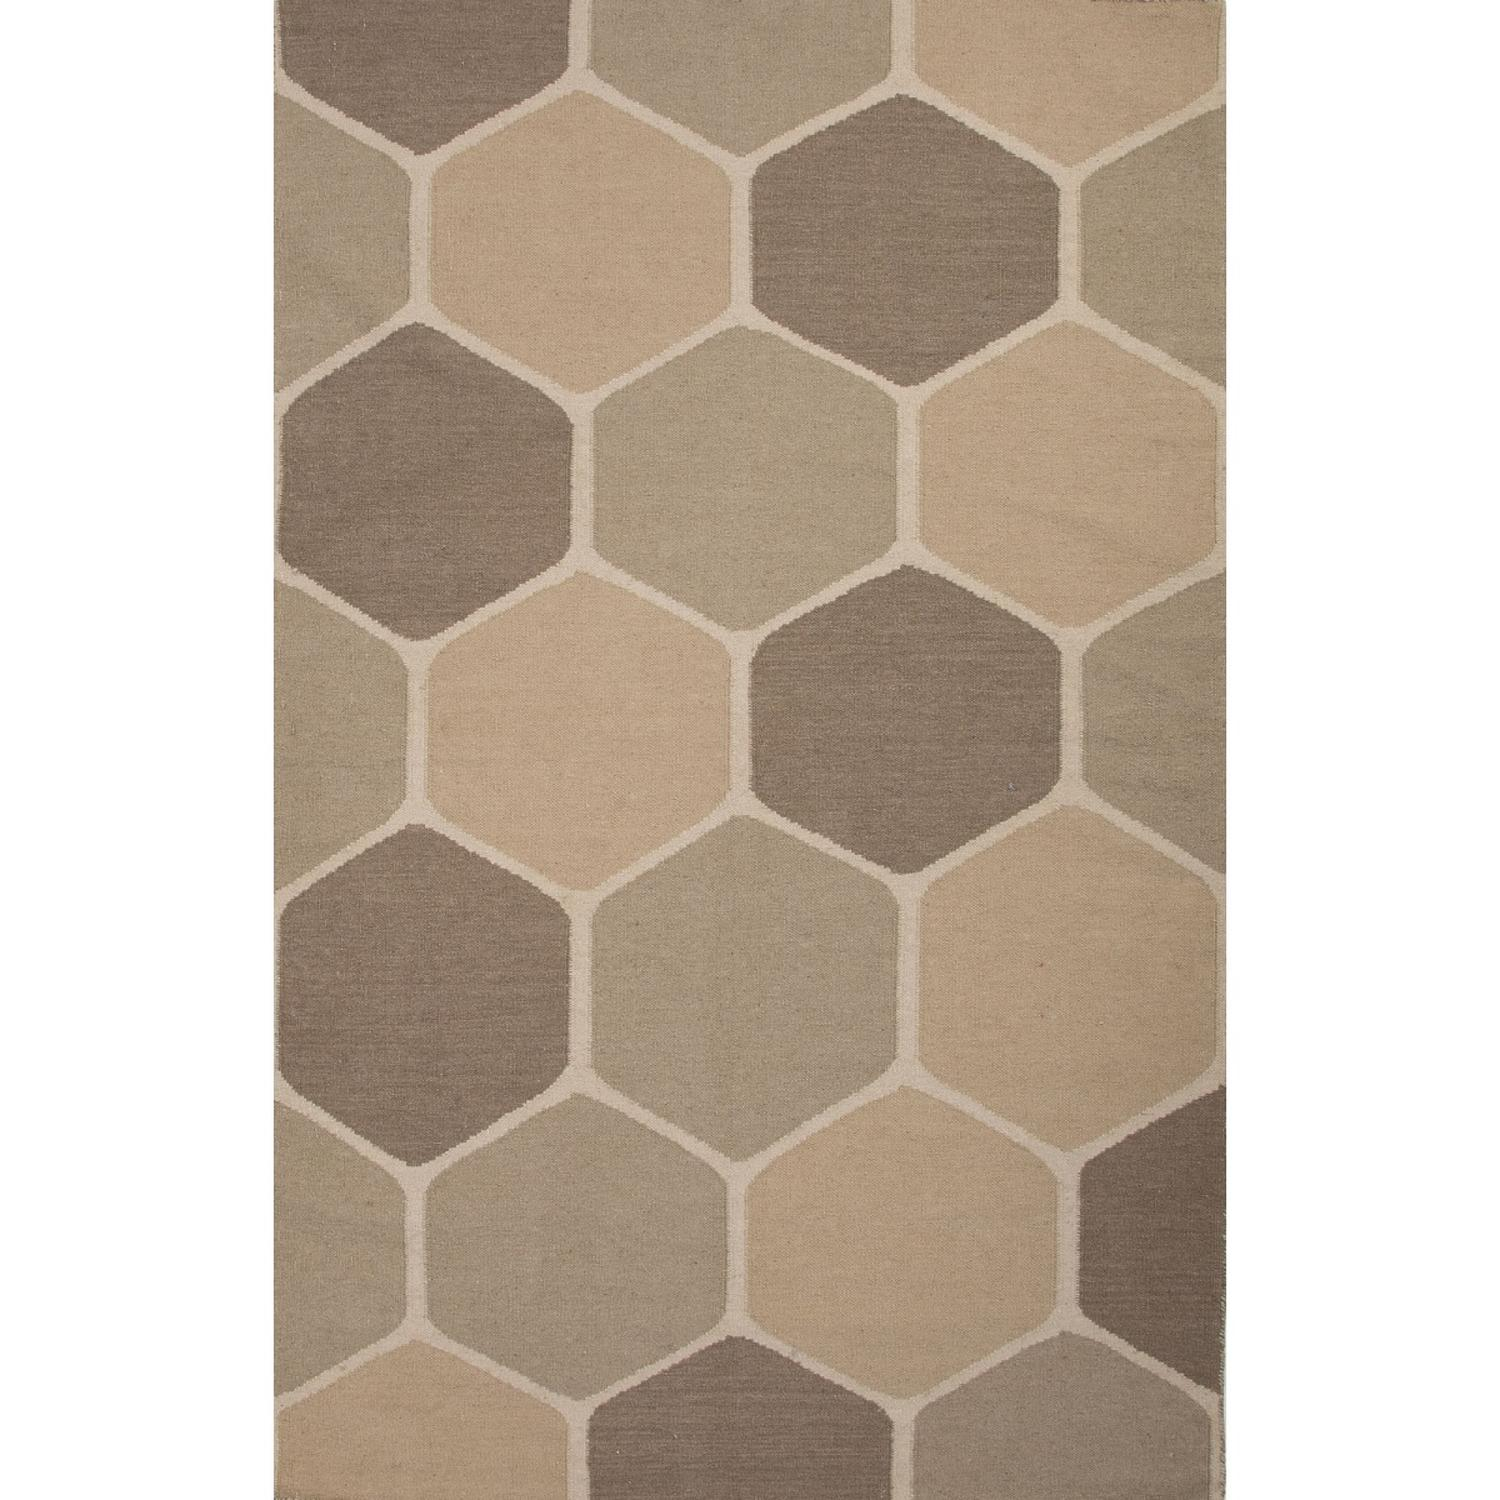 8' x 11' Camel, Sand and Liver Beehive Flat Weave Geometric Pattern Wool Area Throw Rug